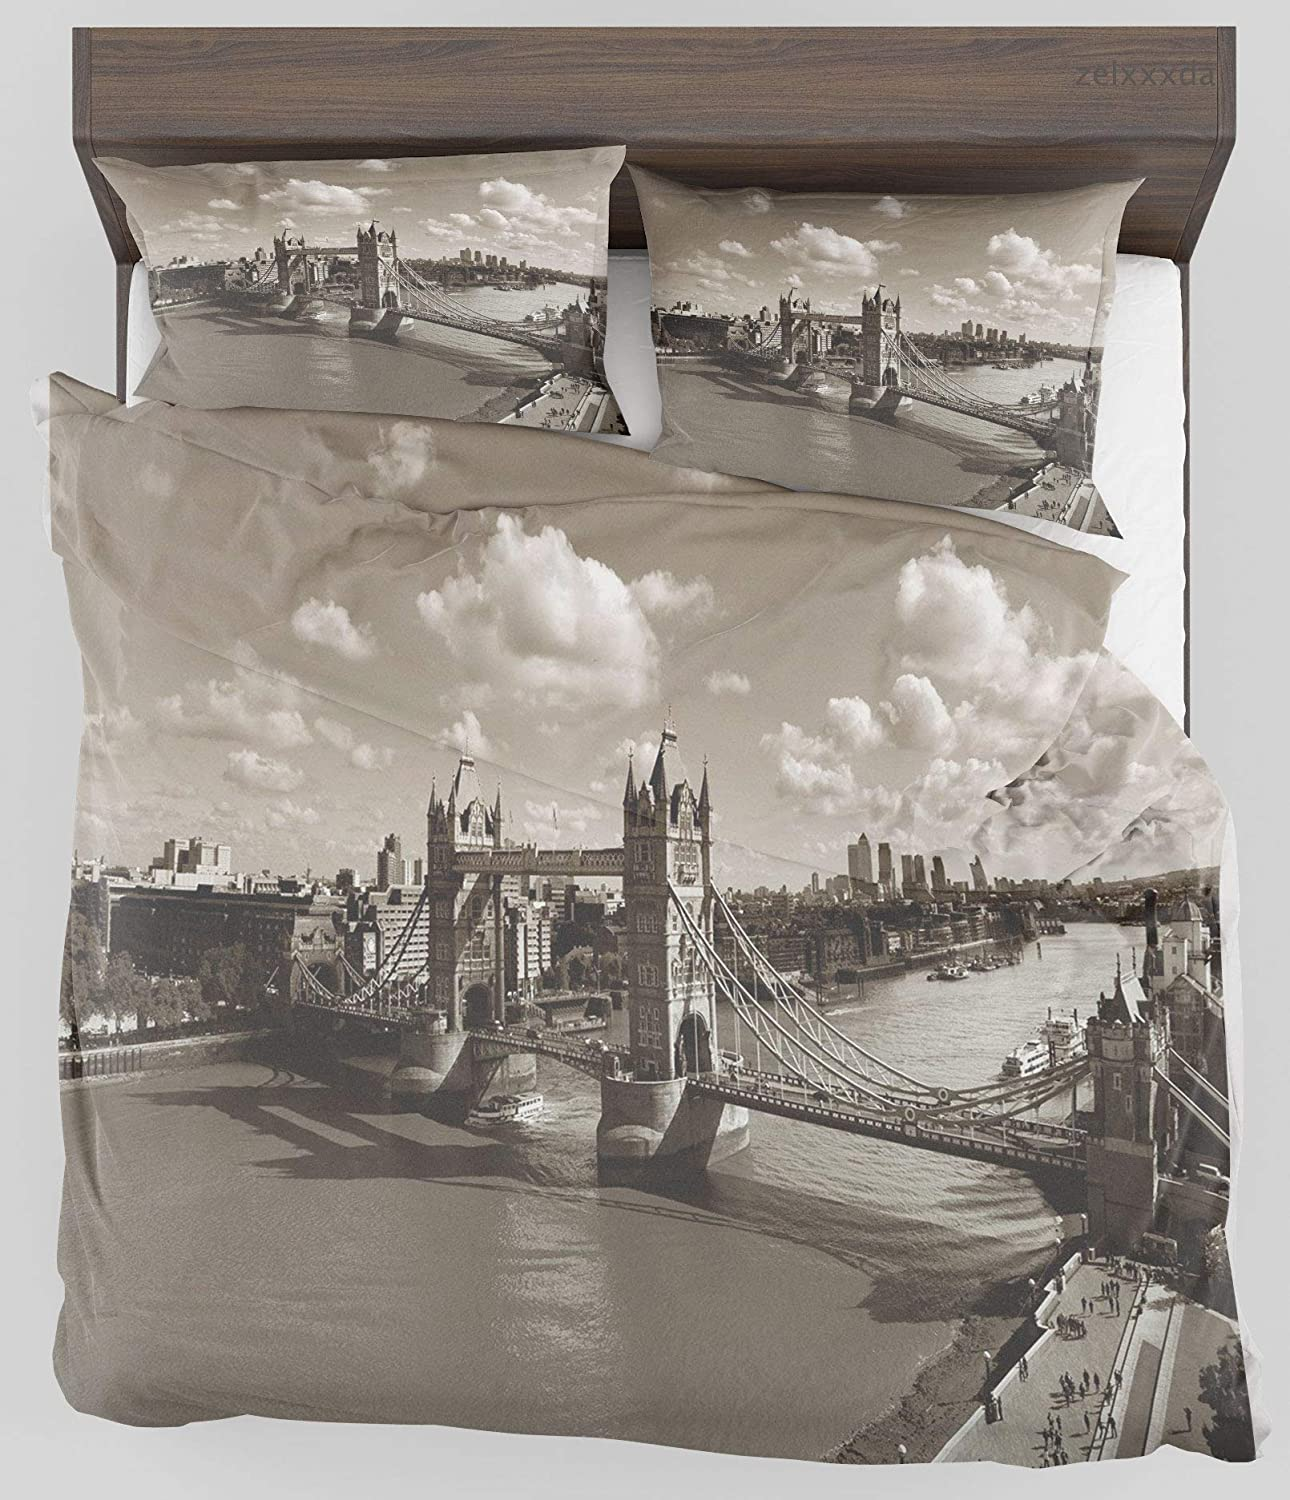 ZELXXXDA Decor Bedding Set Travel Tower Bridge in London Cloudy Sky of Old Historic Cityscape Nostalgia England Theme Full/Queen Size Duvet Cover with 2 Matching Pillow sham